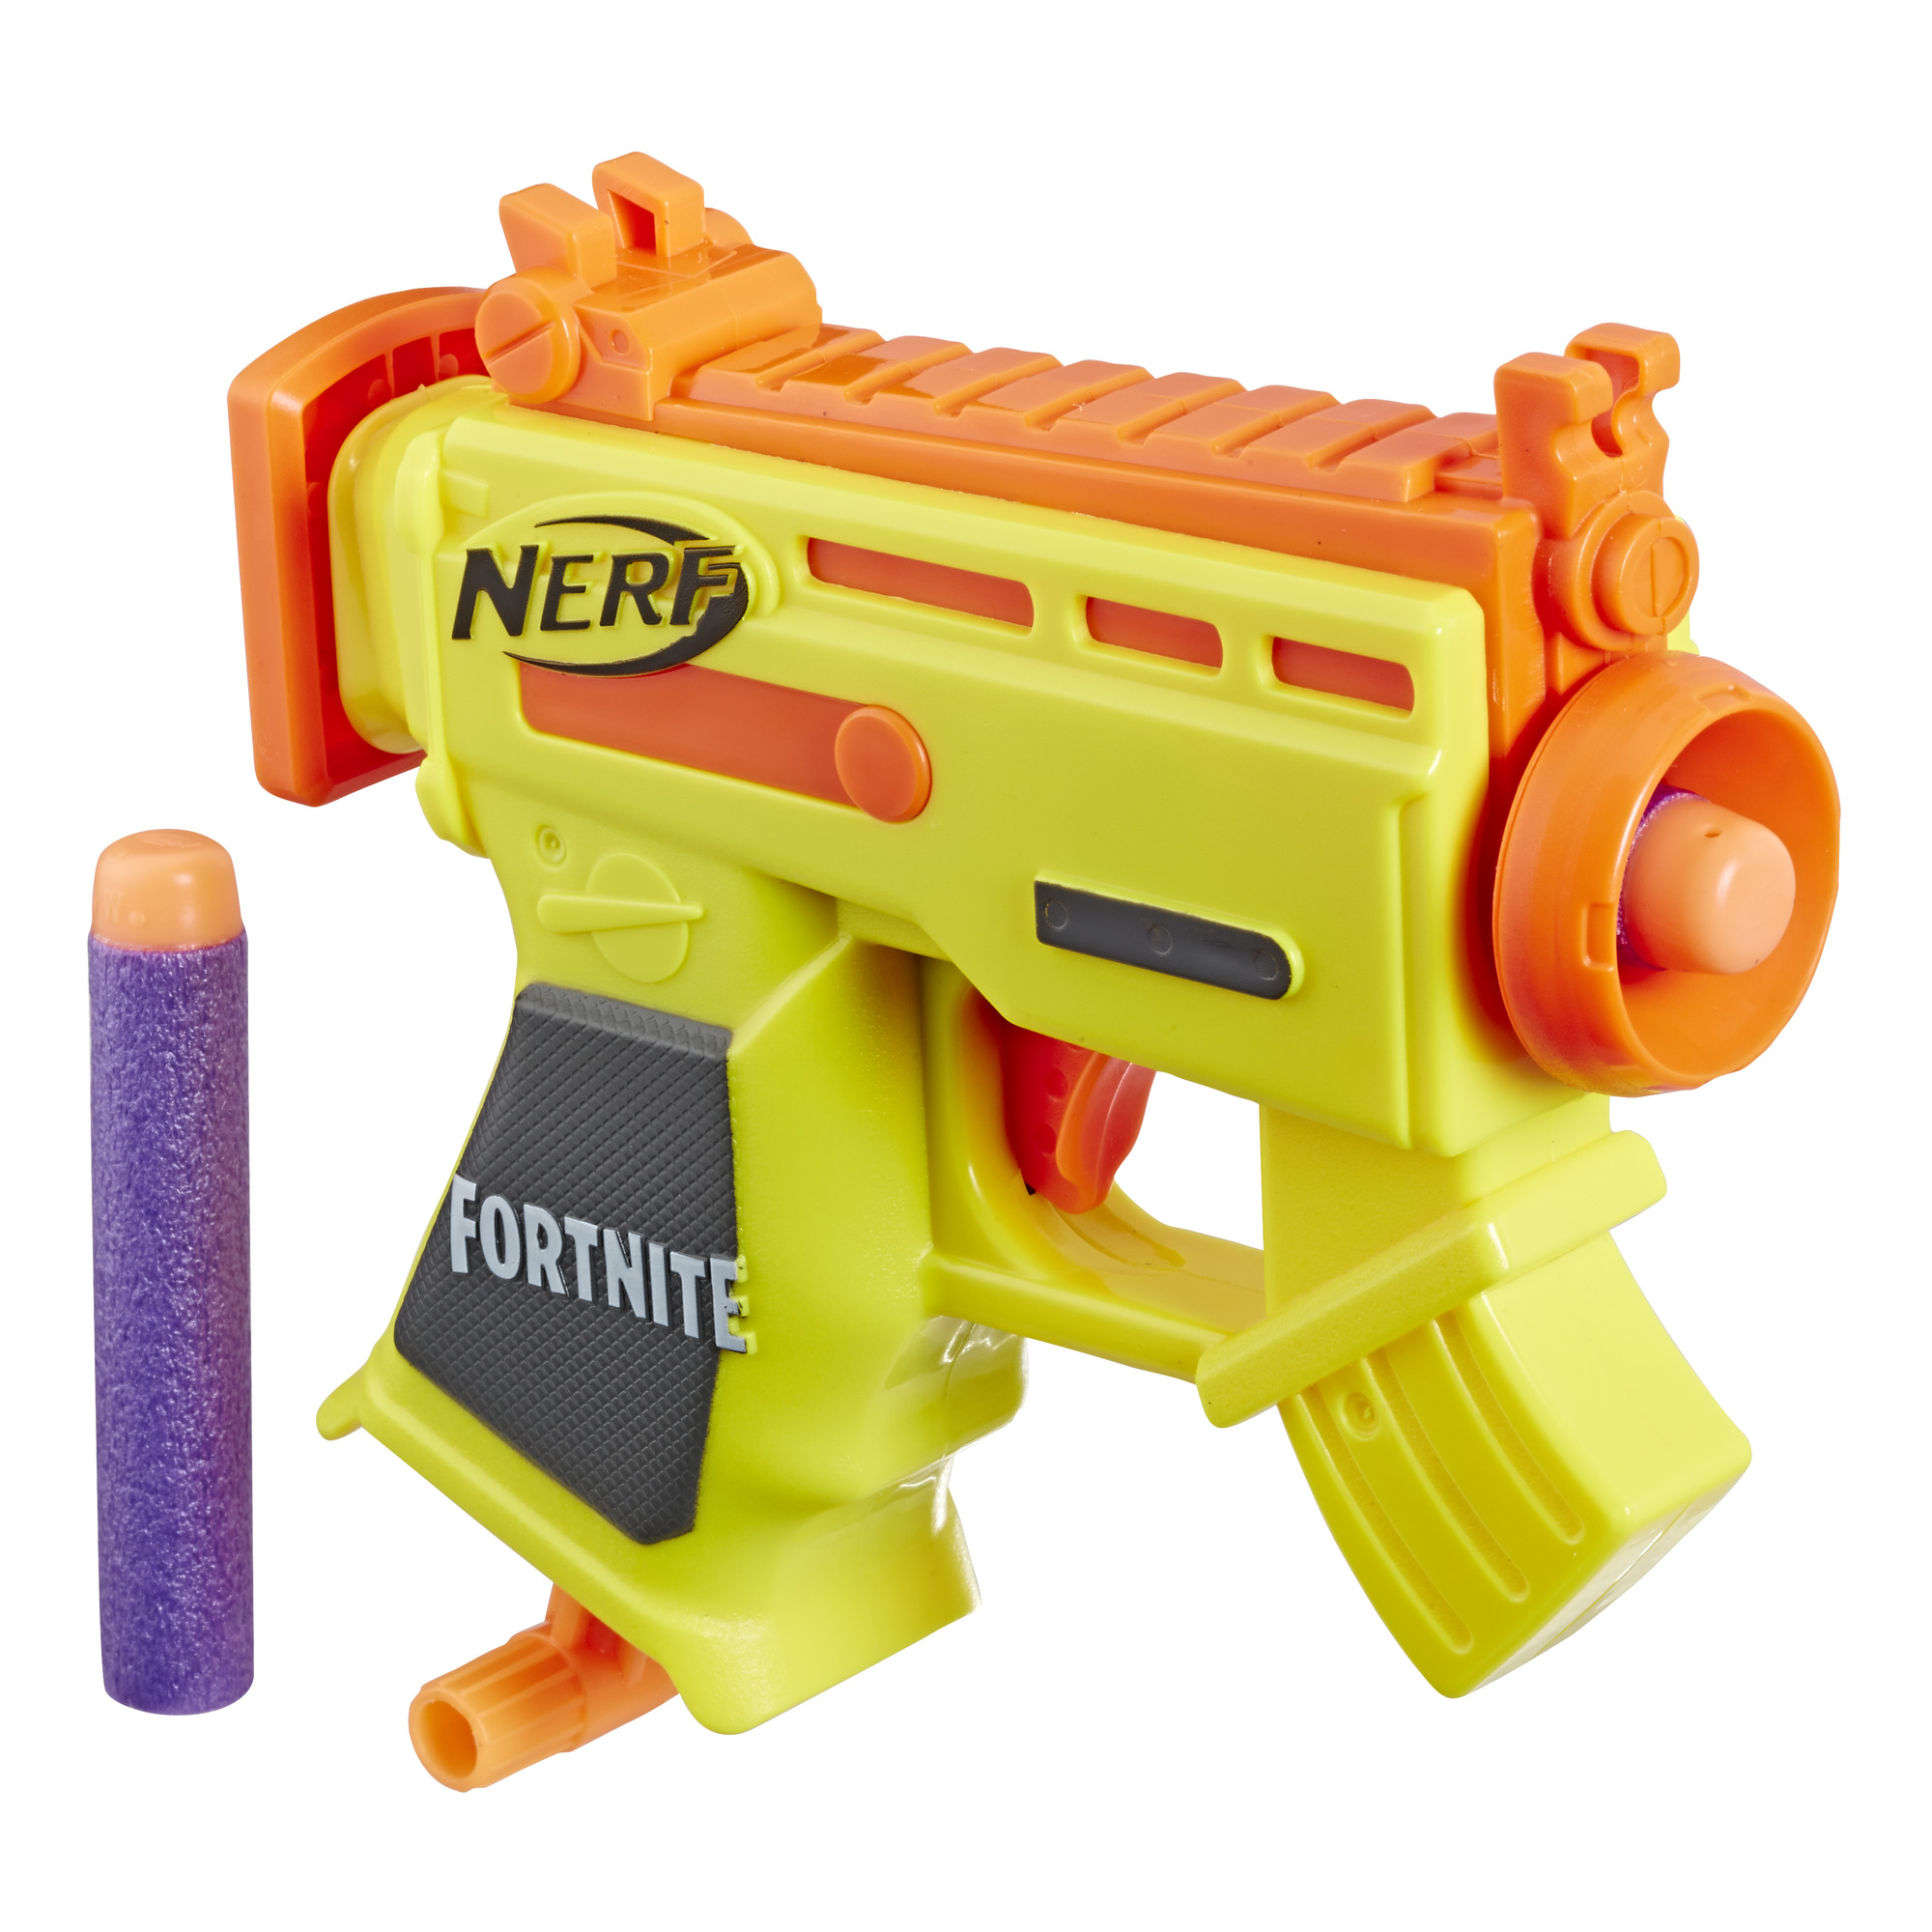 Fortnite Micro AR-L Nerf MicroShots Dart-Firing Toy Blaster and 2 Official Nerf Elite Darts